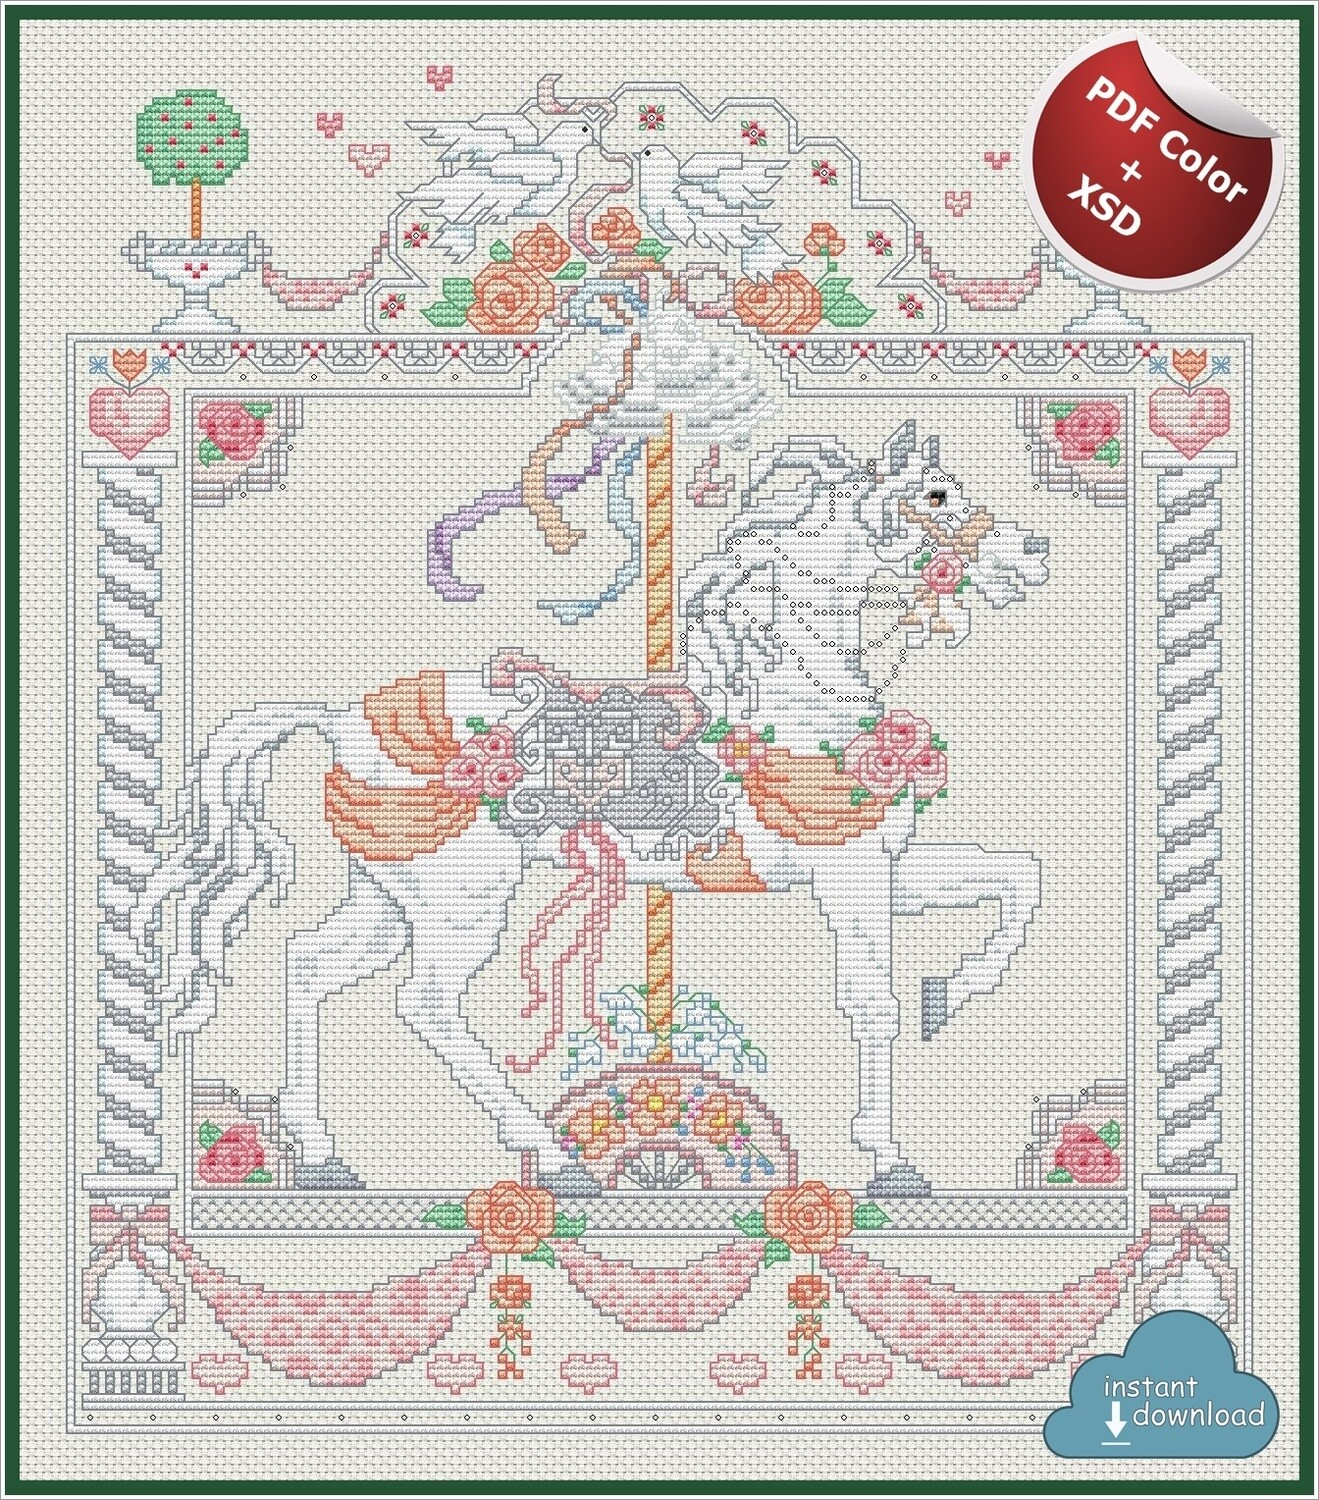 Carousel Horses June Cross Stitch Pattern PDF Color + XSD. Instant Download